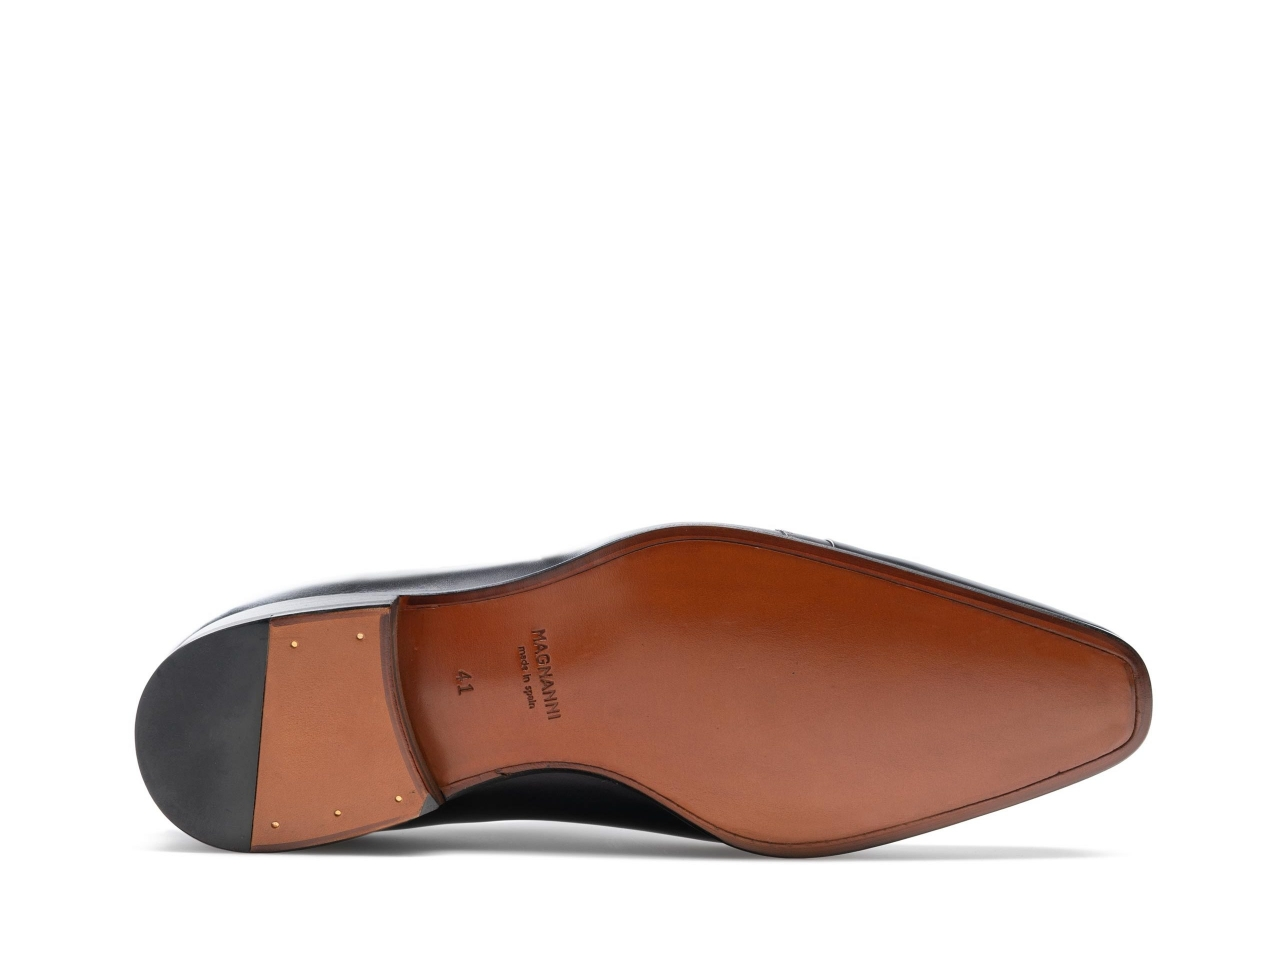 The sole of the Tirgo